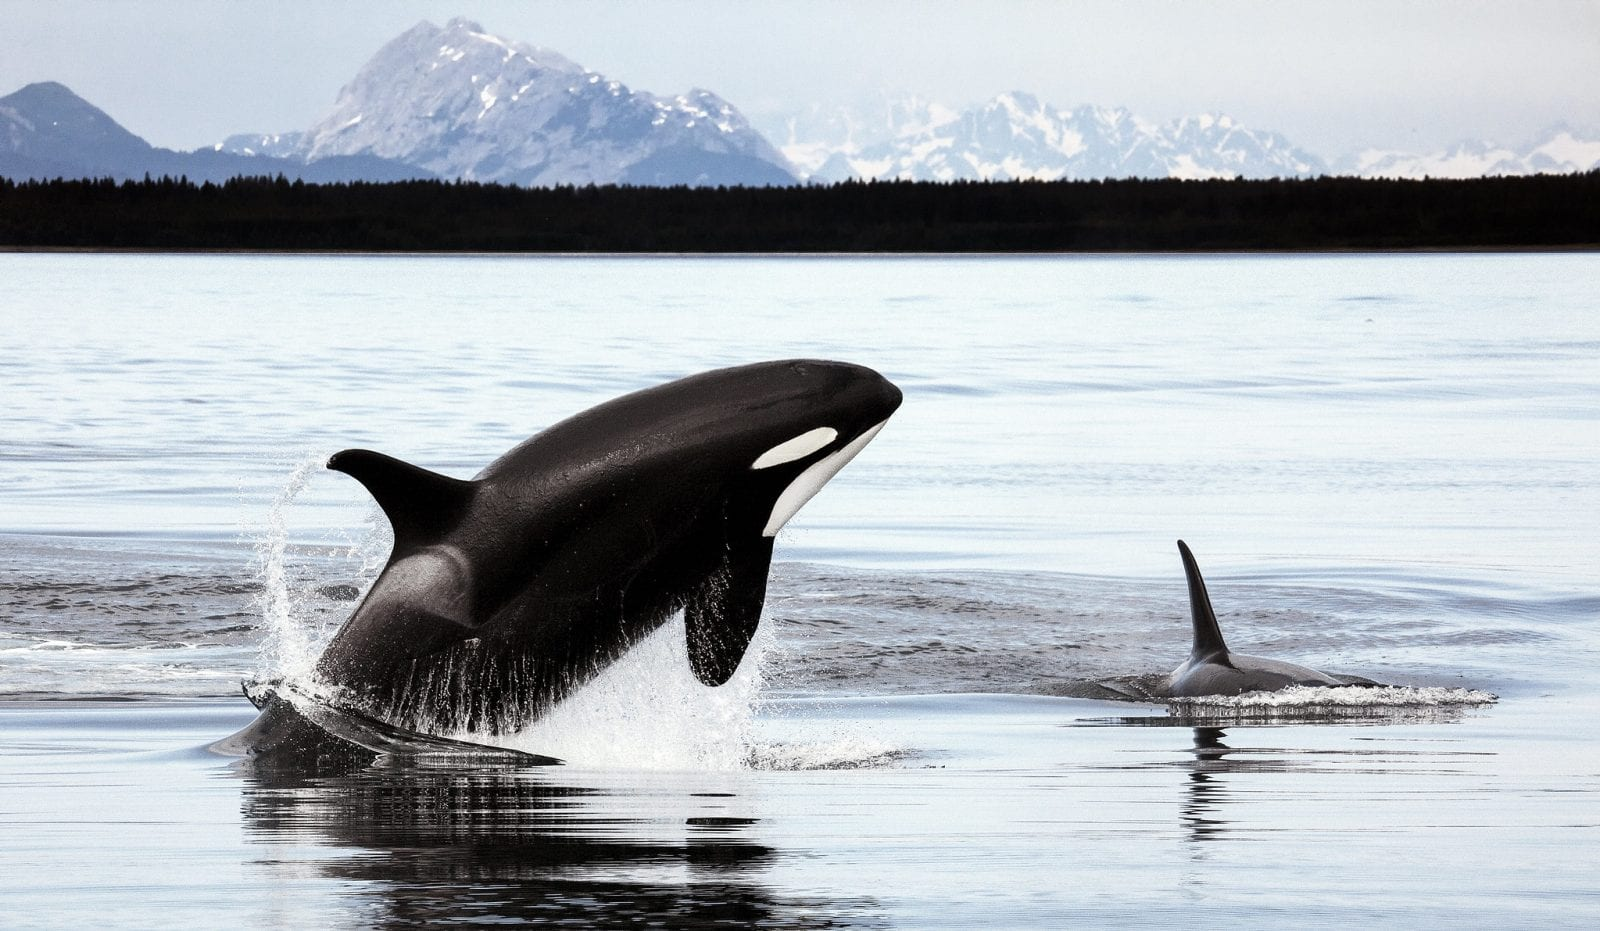 Image of orca breaching the water in alaska